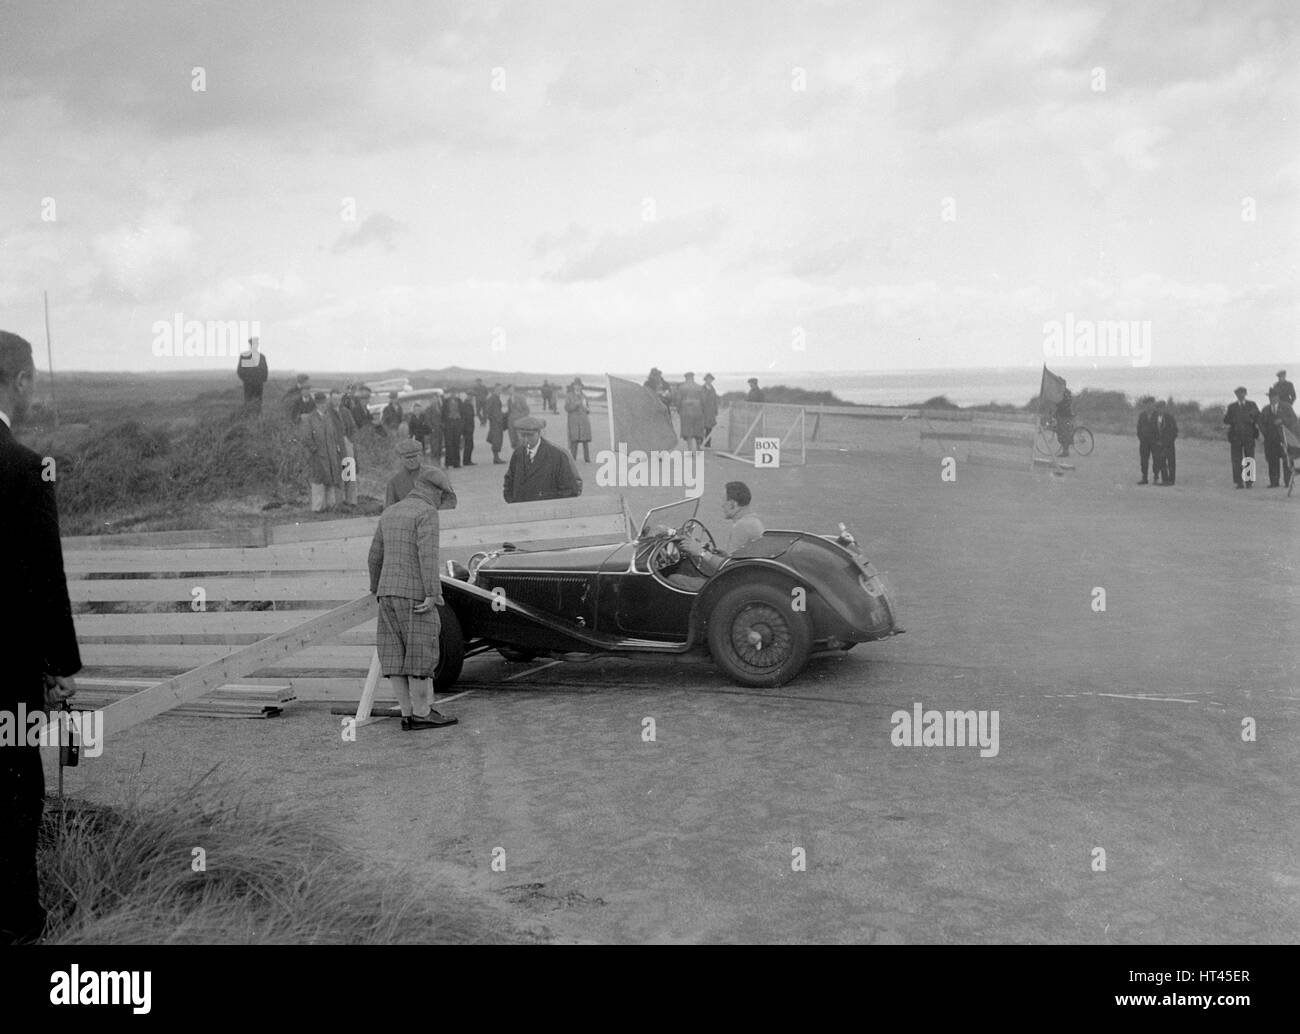 Riley competing in the RSAC Scottish Rally, 1934. Artist: Bill Brunell. - Stock Image